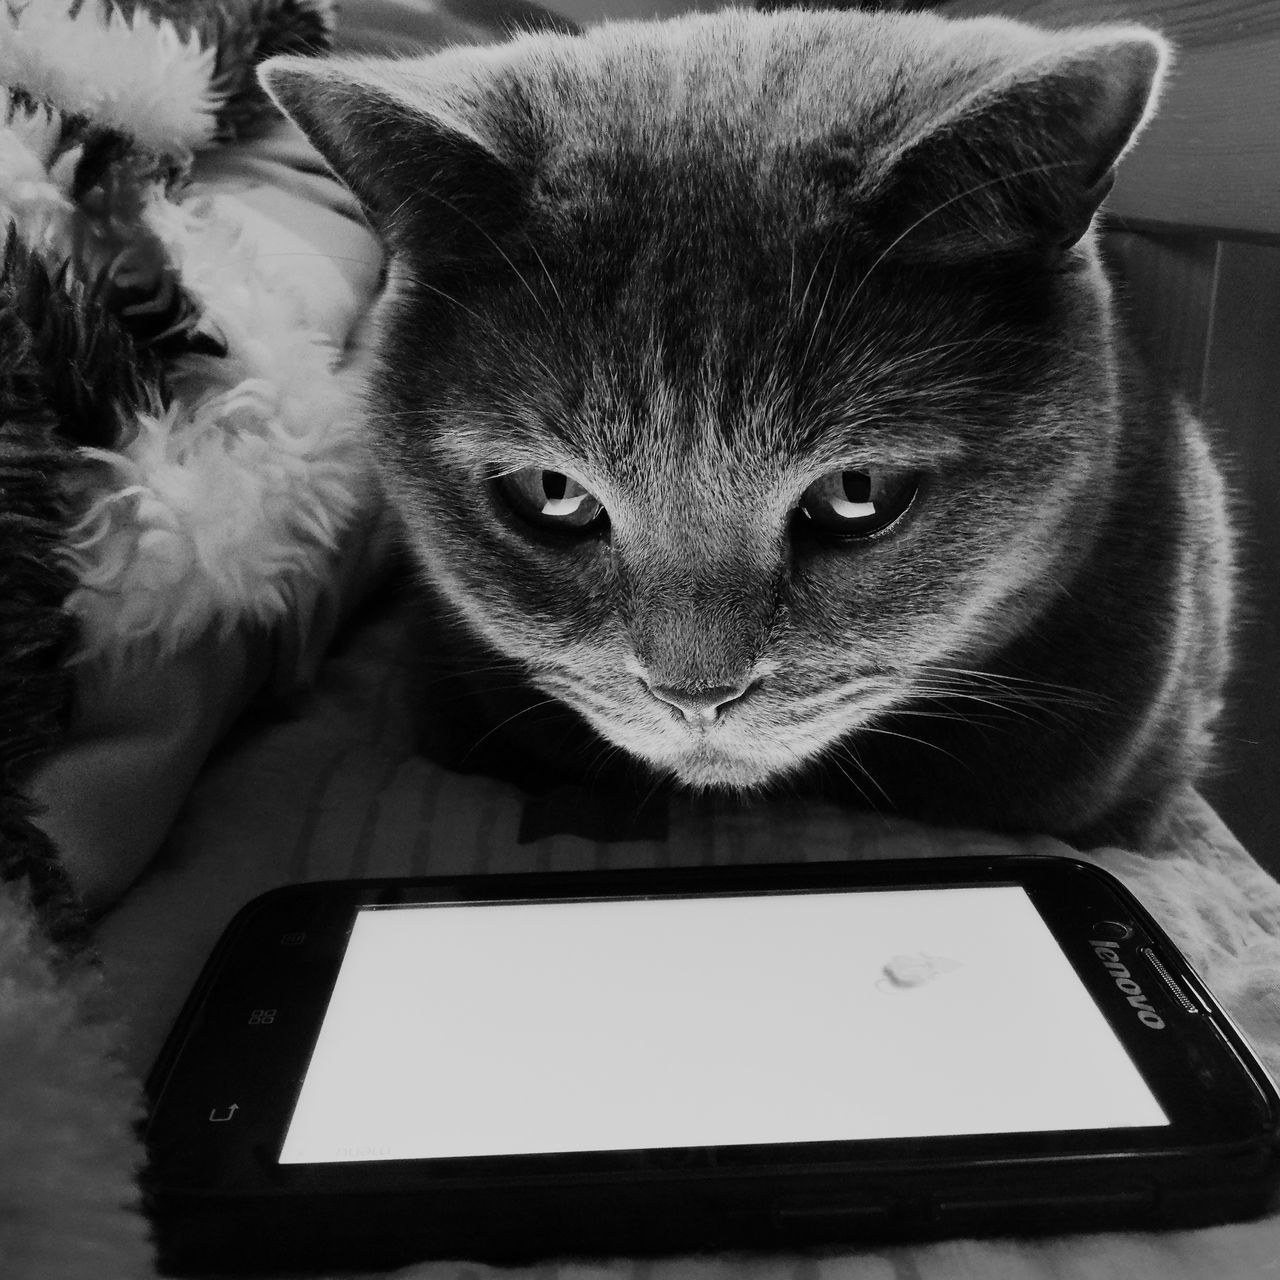 Cat game Pets One Animal Blue Cat FelineDomesticus Felinelove Felinefaces Feline Love Felinephotography Felinefriends British Cat Britishcat Britishshorthair Cateyes Cat Photography Cats 🐱 Cat Lovers Cats Of EyeEm Cat♡ Cat